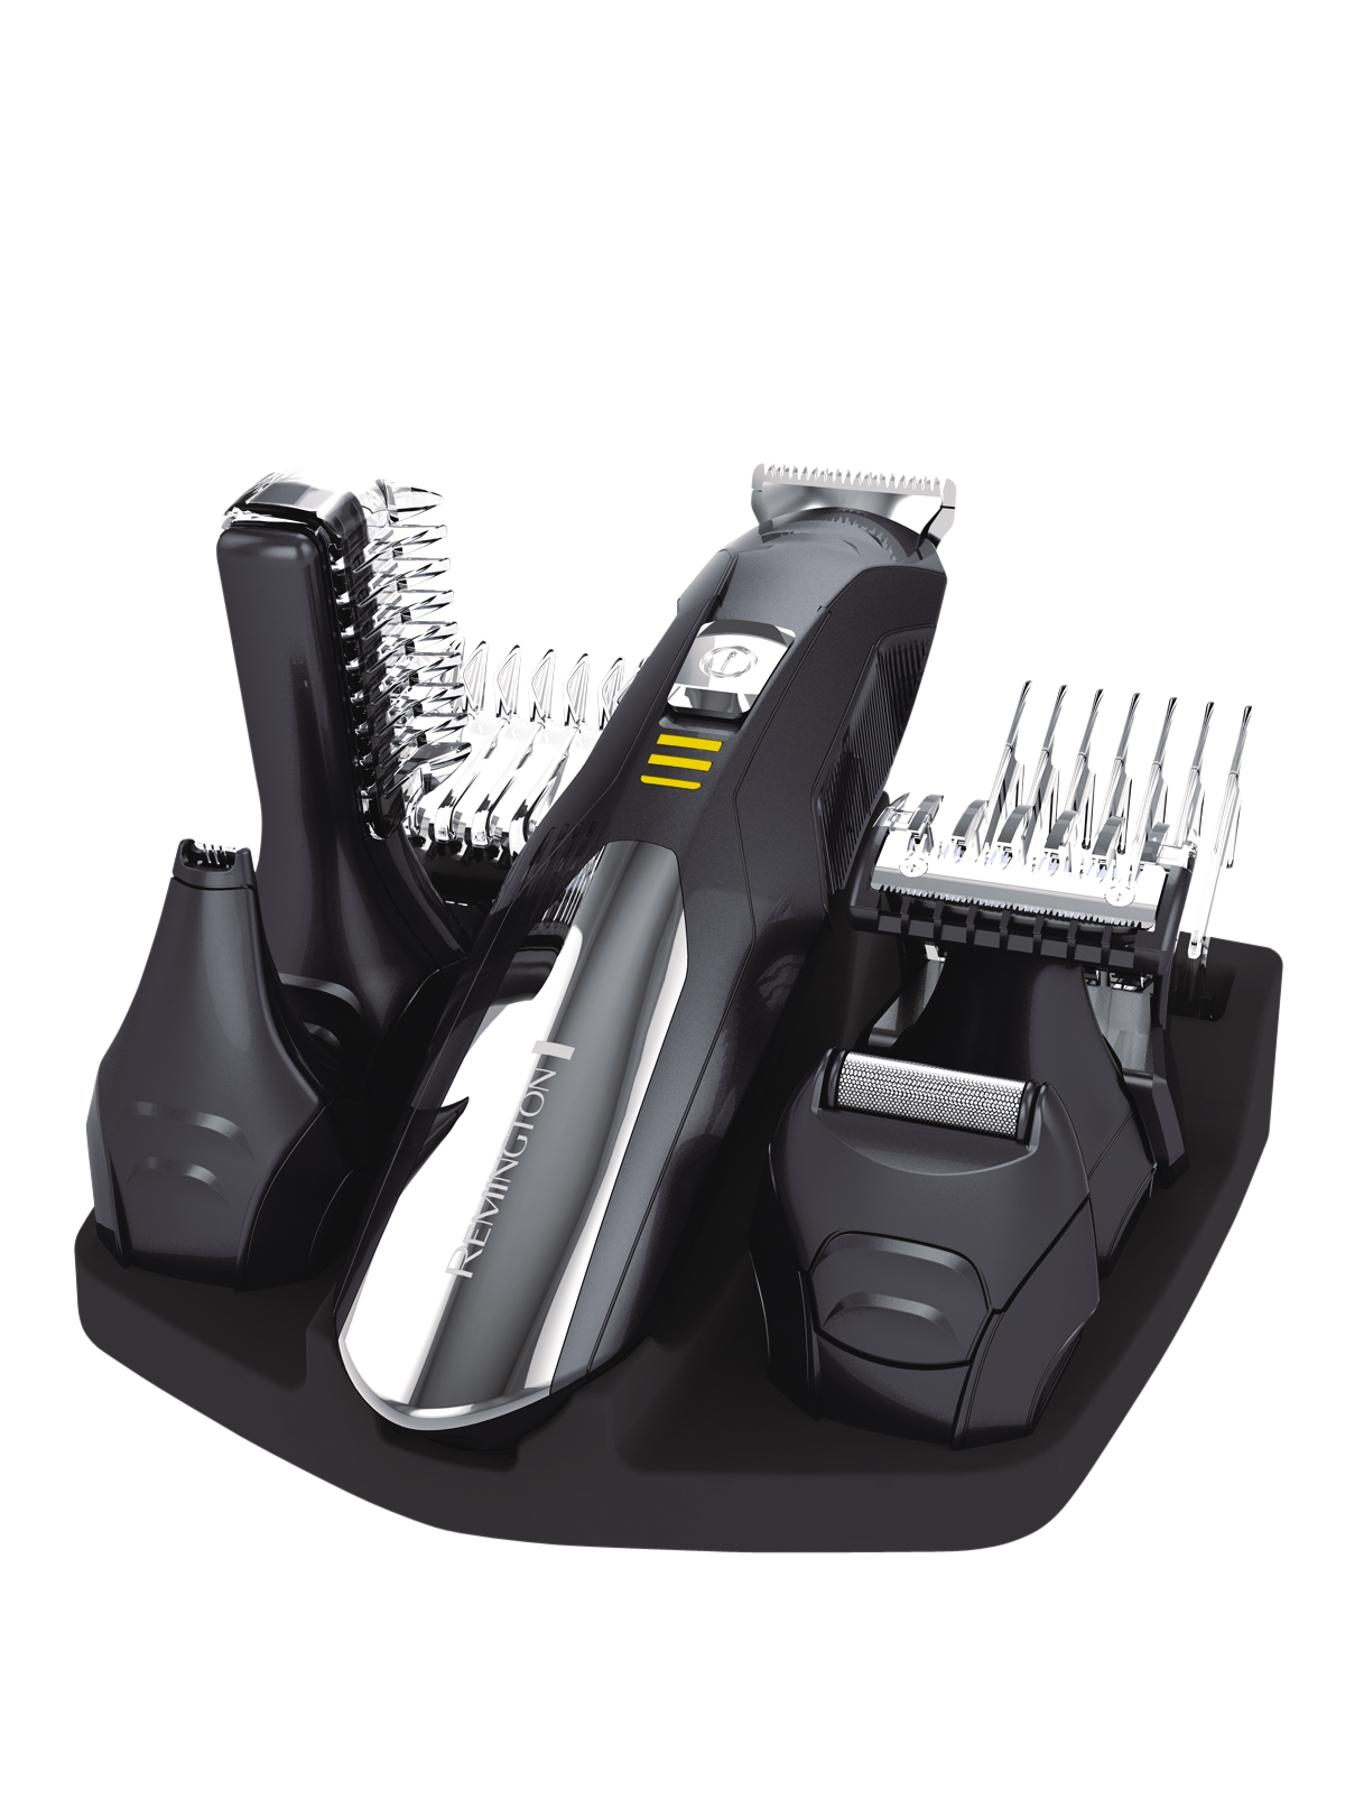 Remington PG6050 Pioneer Personal Grooming System & FREE Lynx Gift Set*